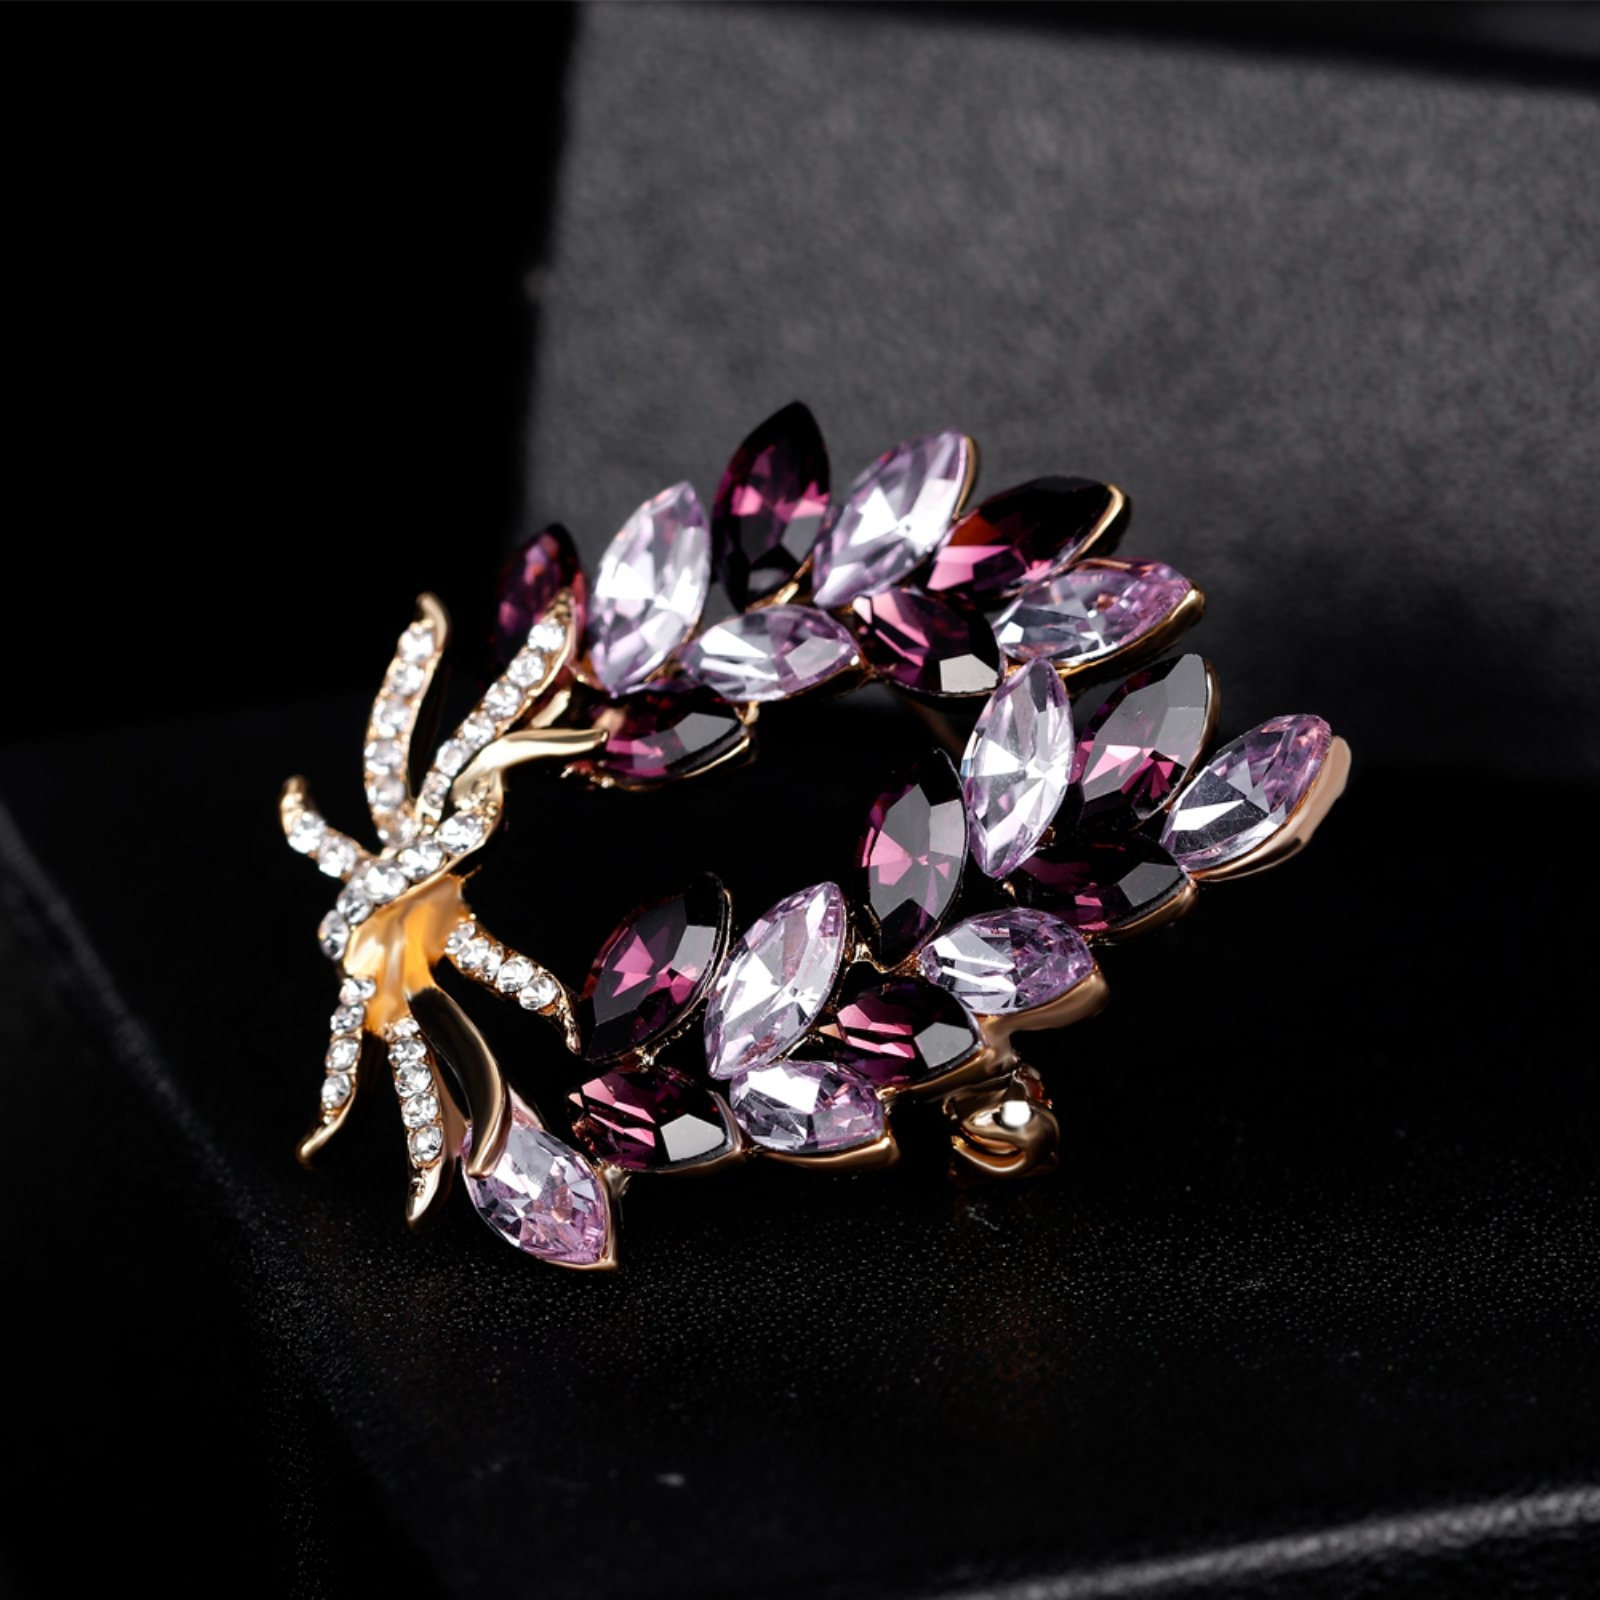 ptk12 Coat Accessories Purple Crystal Flower Casual Party Bouquets Rhinestone Brooch by ptk12 (Image #3)